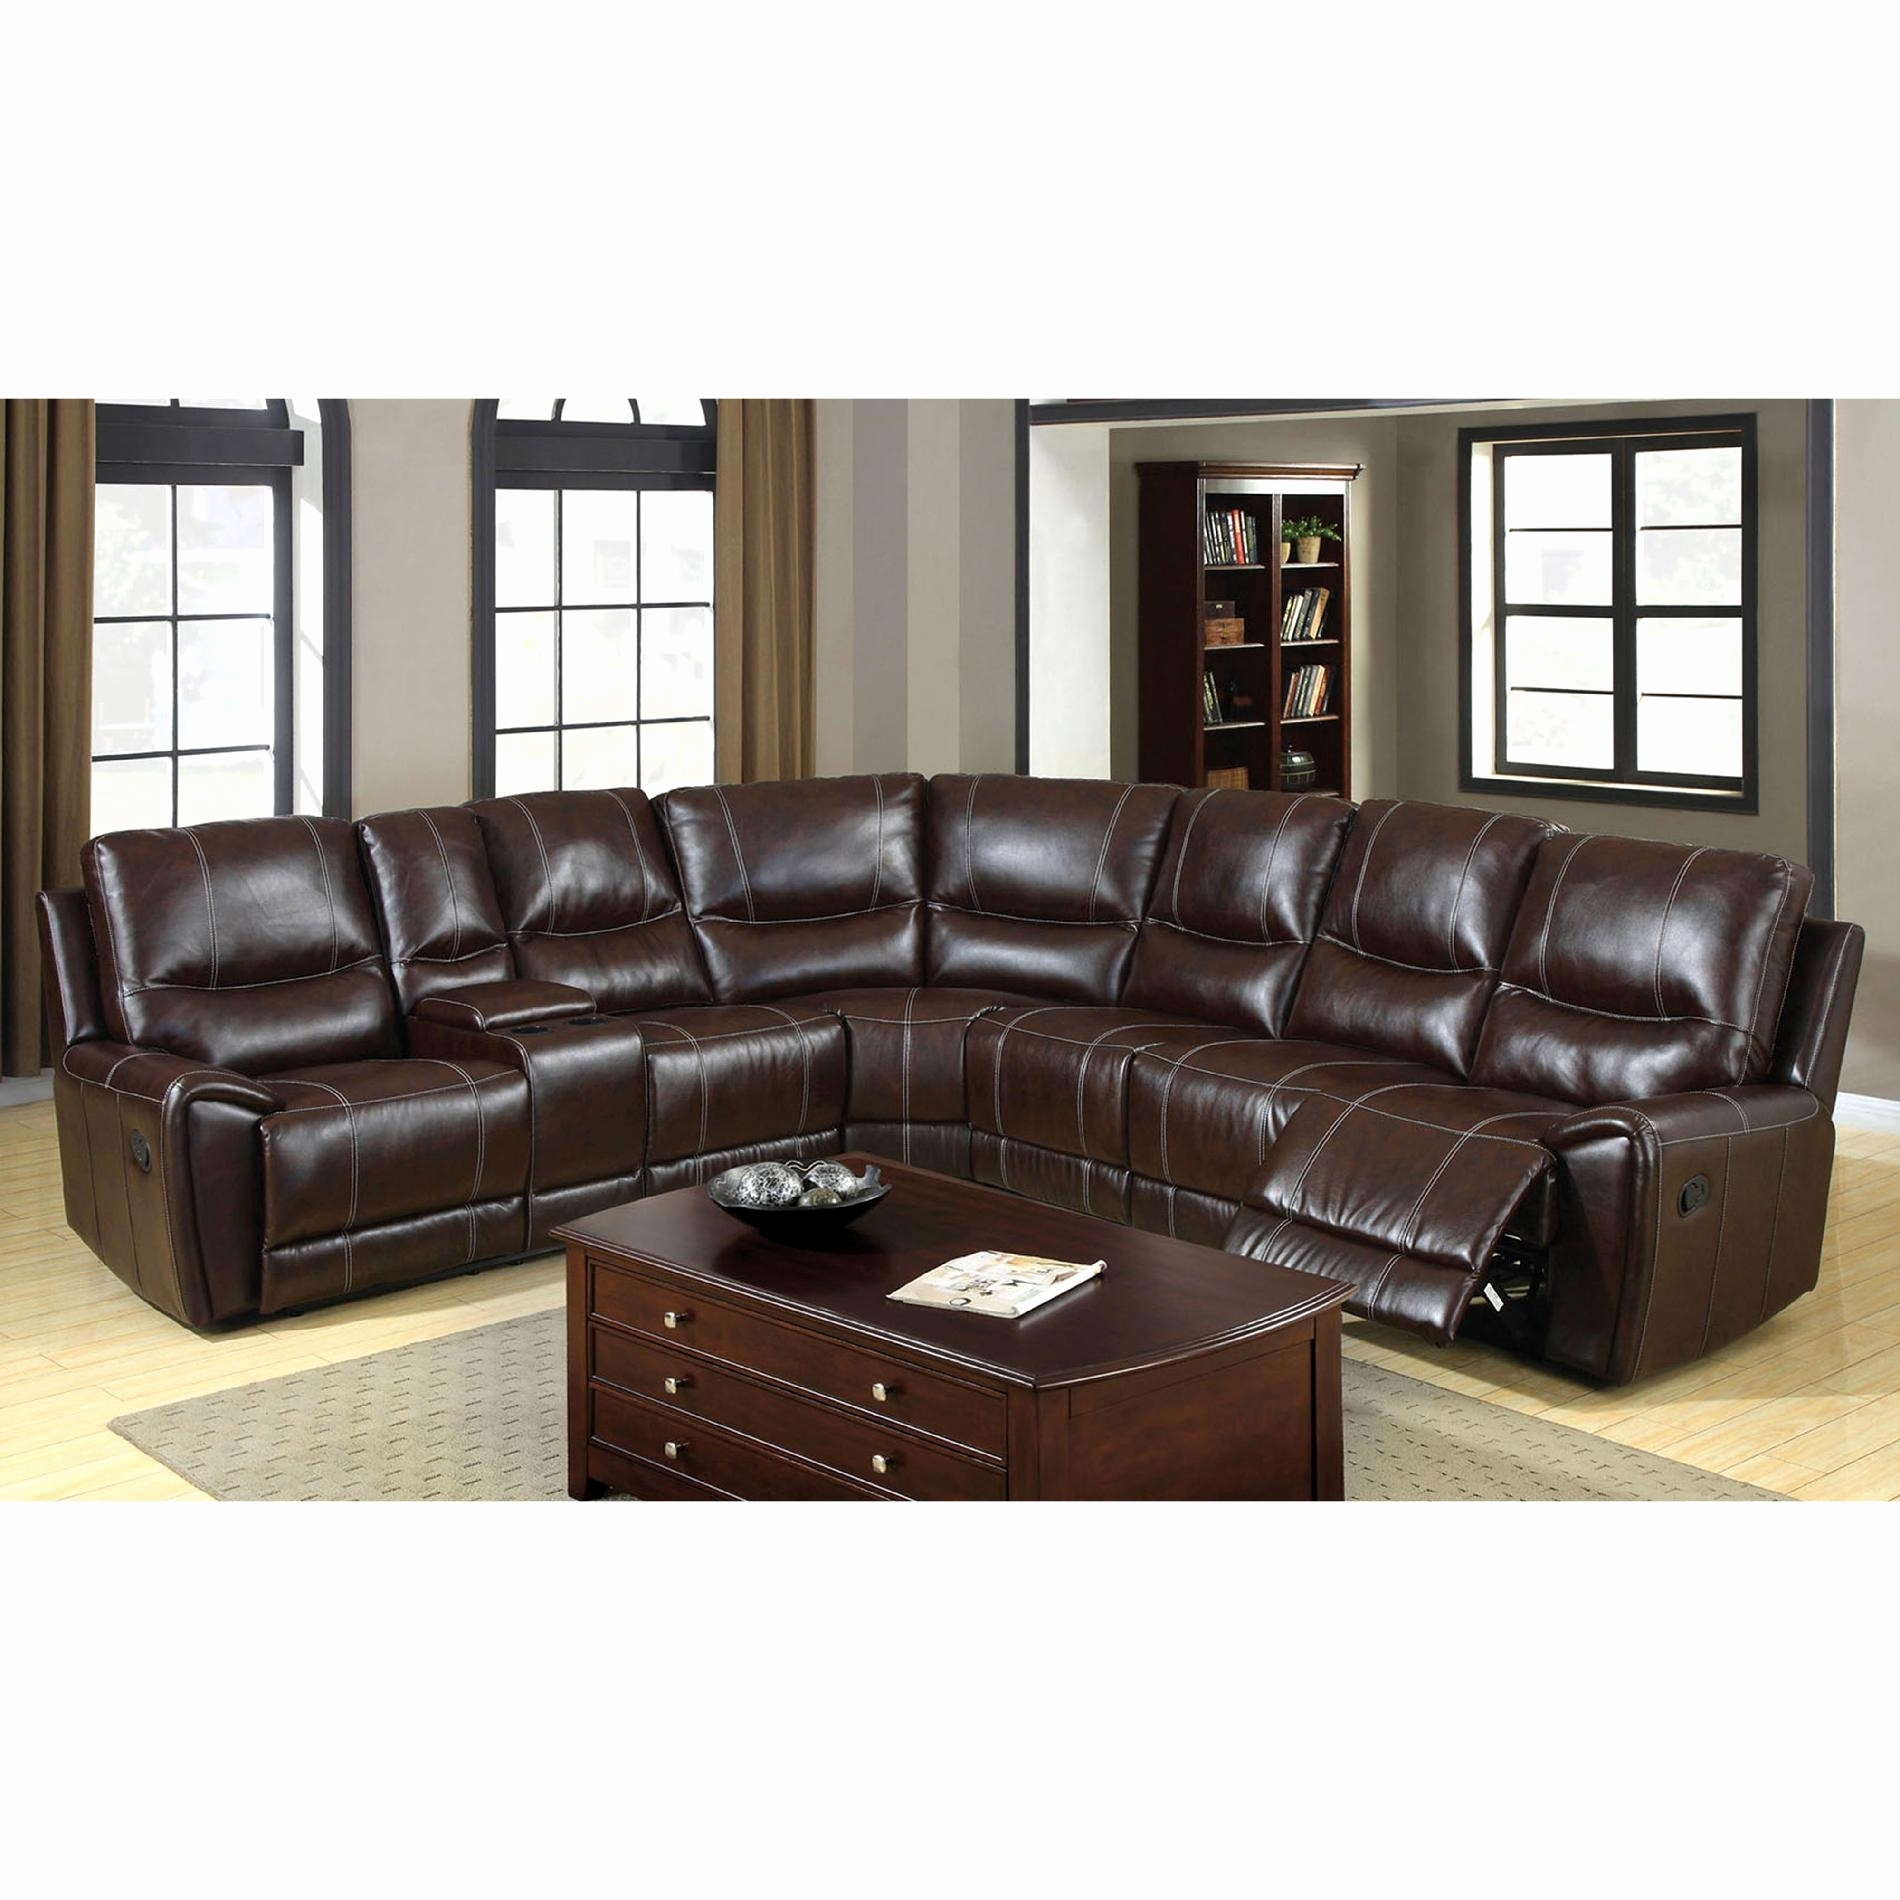 10 Best Collection Of Sectional Sofas Art Van Sofa Ideas